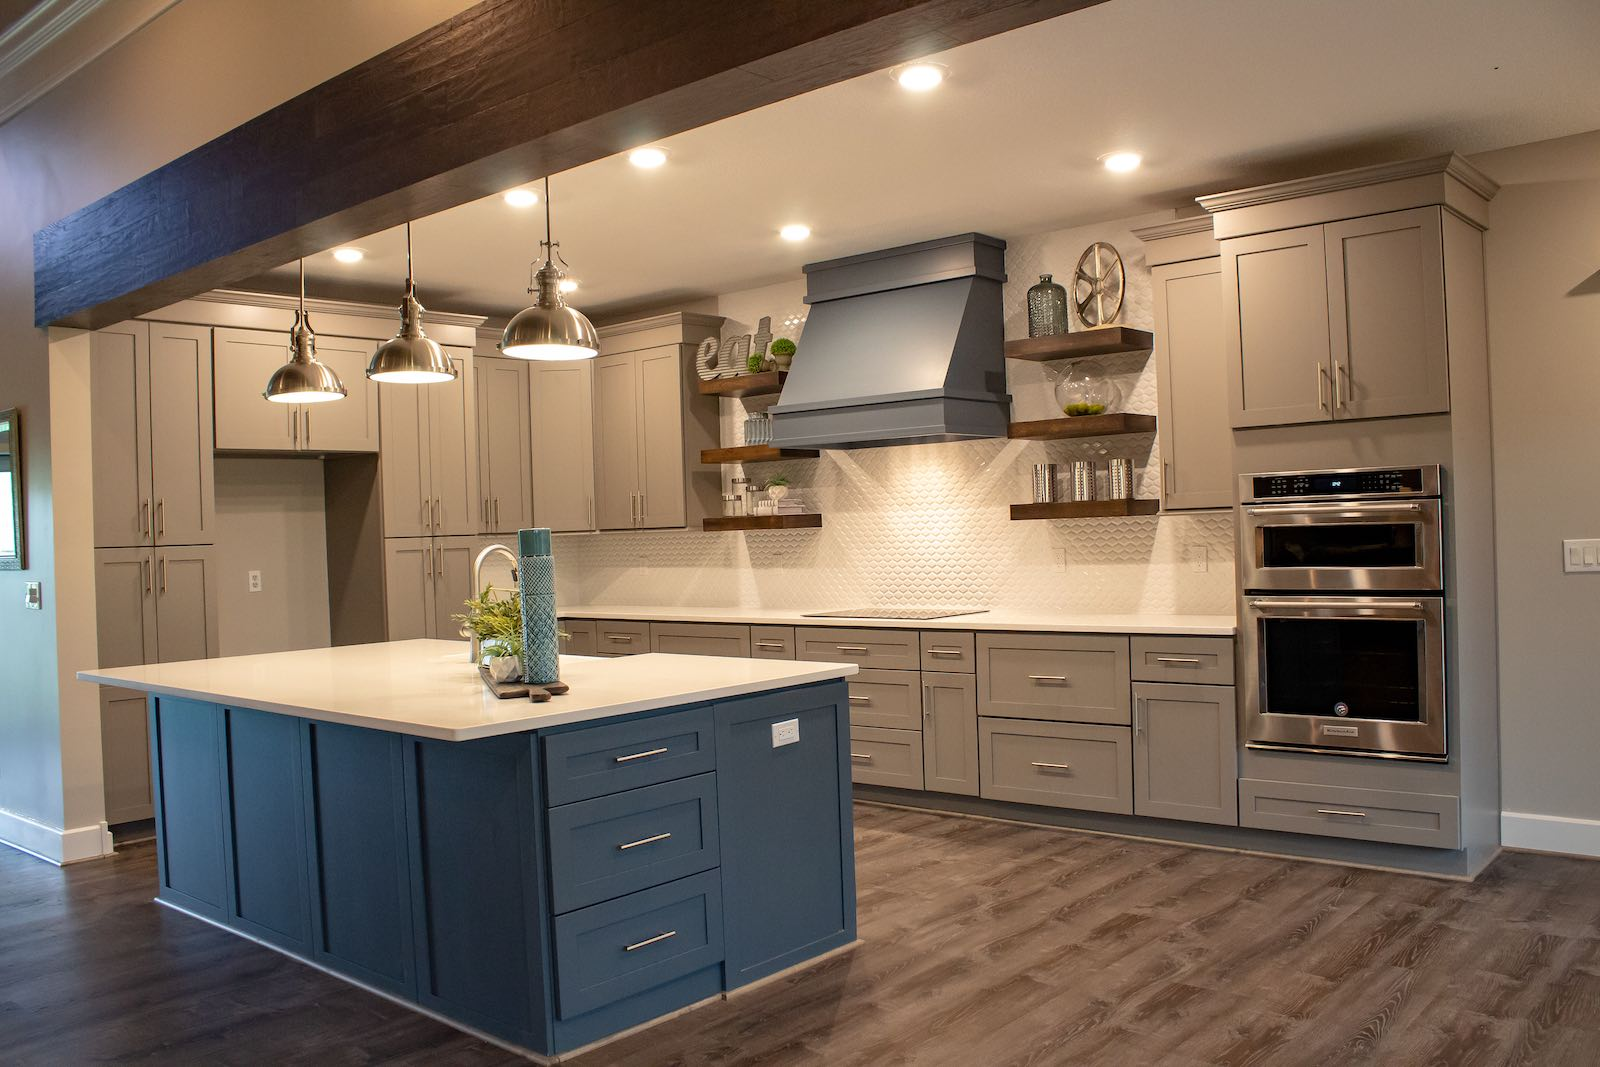 Kitchen island and Full Kitchen Remodel by Bryan Casey Construction